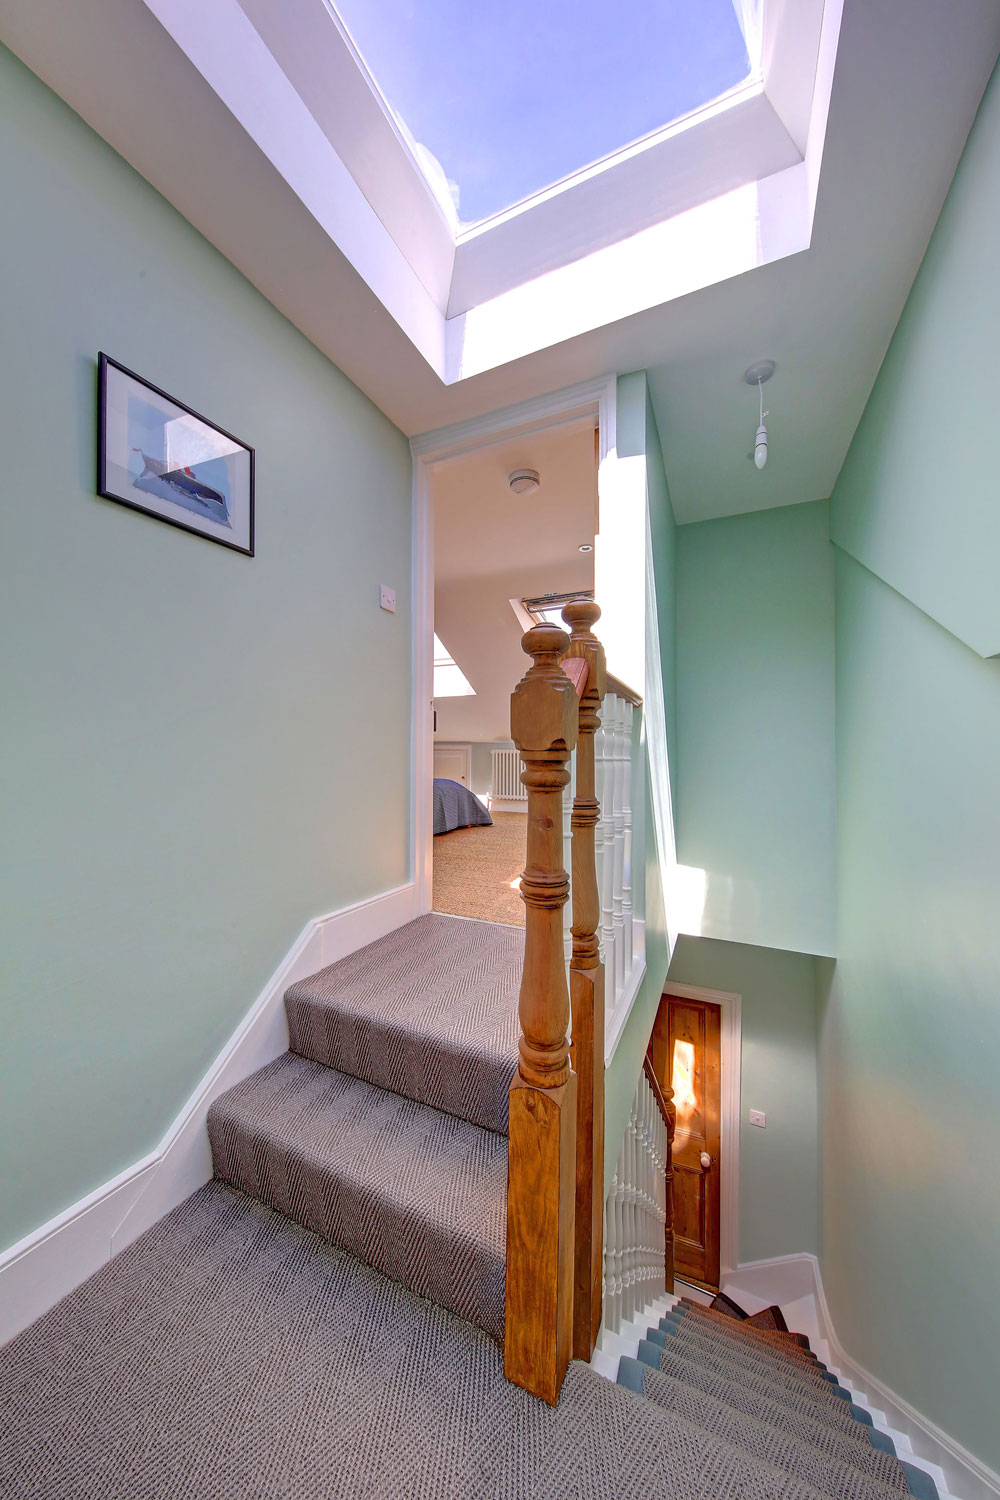 Rosenthorpe Road loft conversion